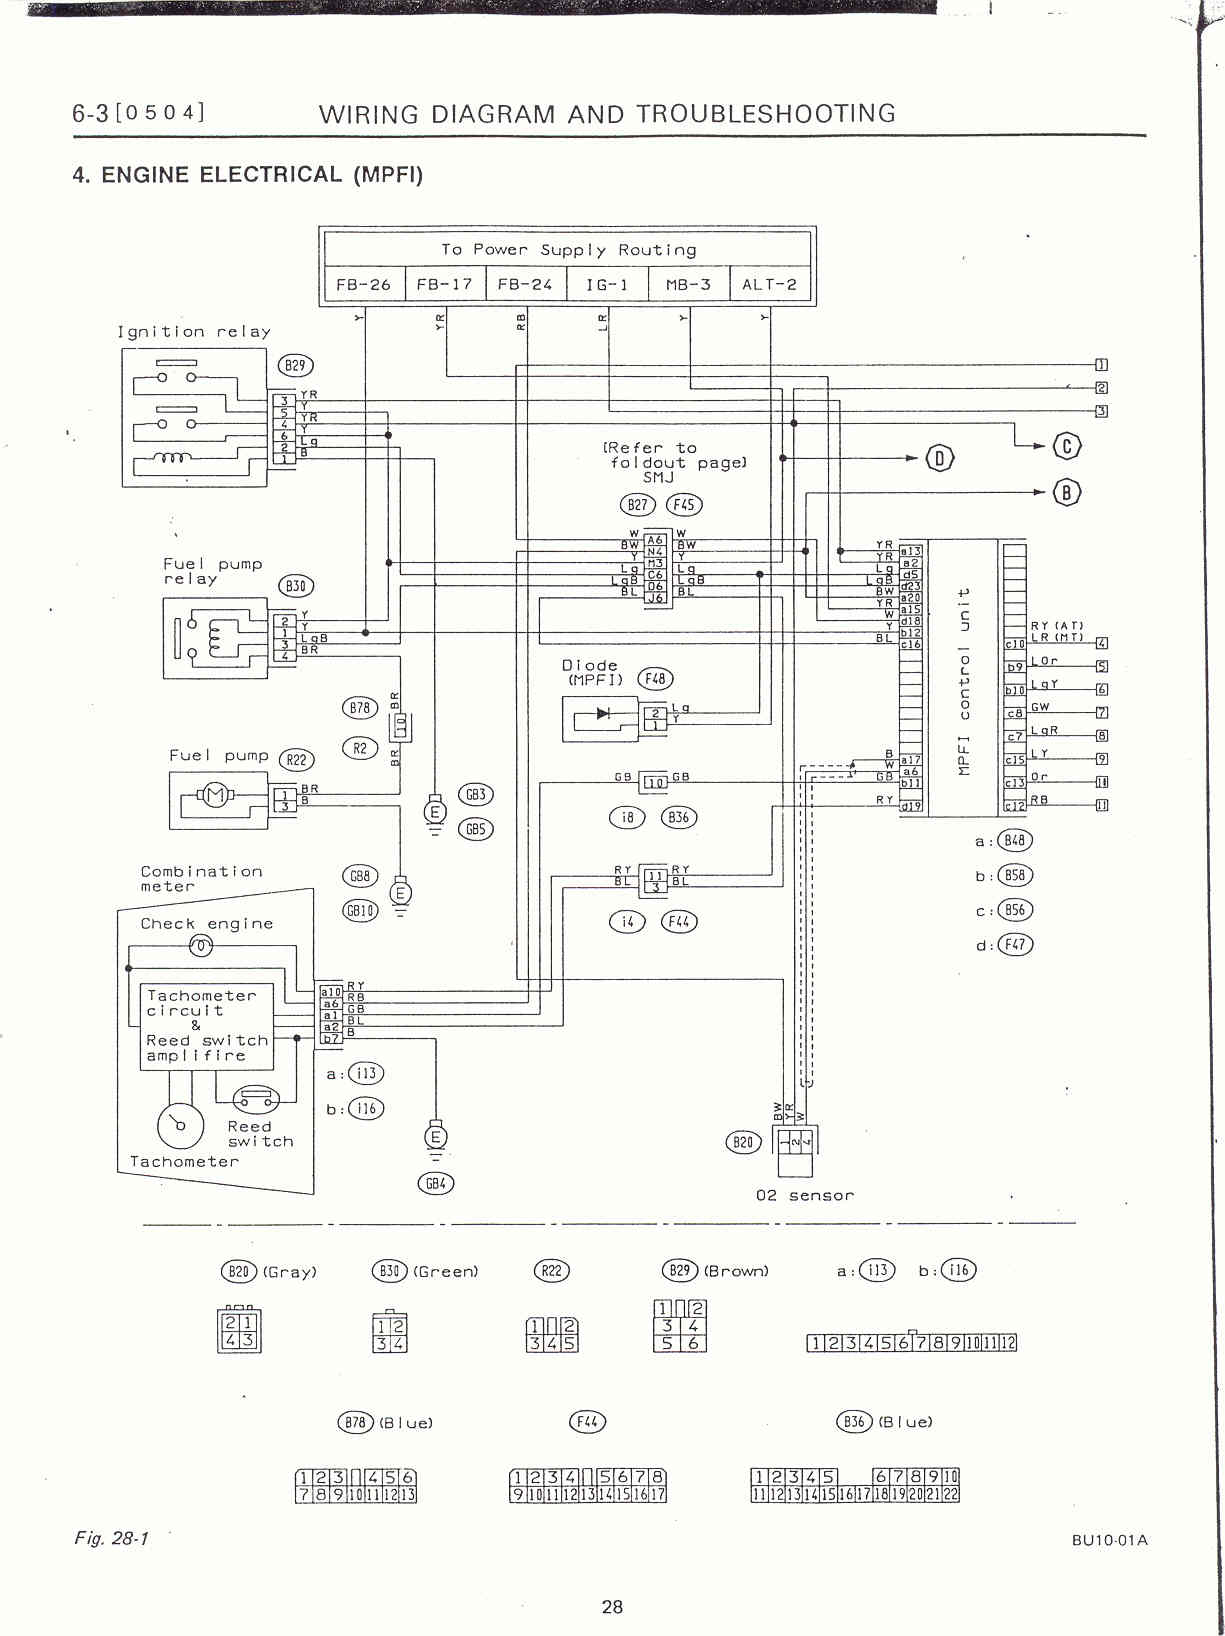 1992 Subaru Legacy Engine Diagram Manual Guide Wiring 01 Bmw X5 Vacuum Schematic Library Rh 56 Kaufmed De 2001 Outback